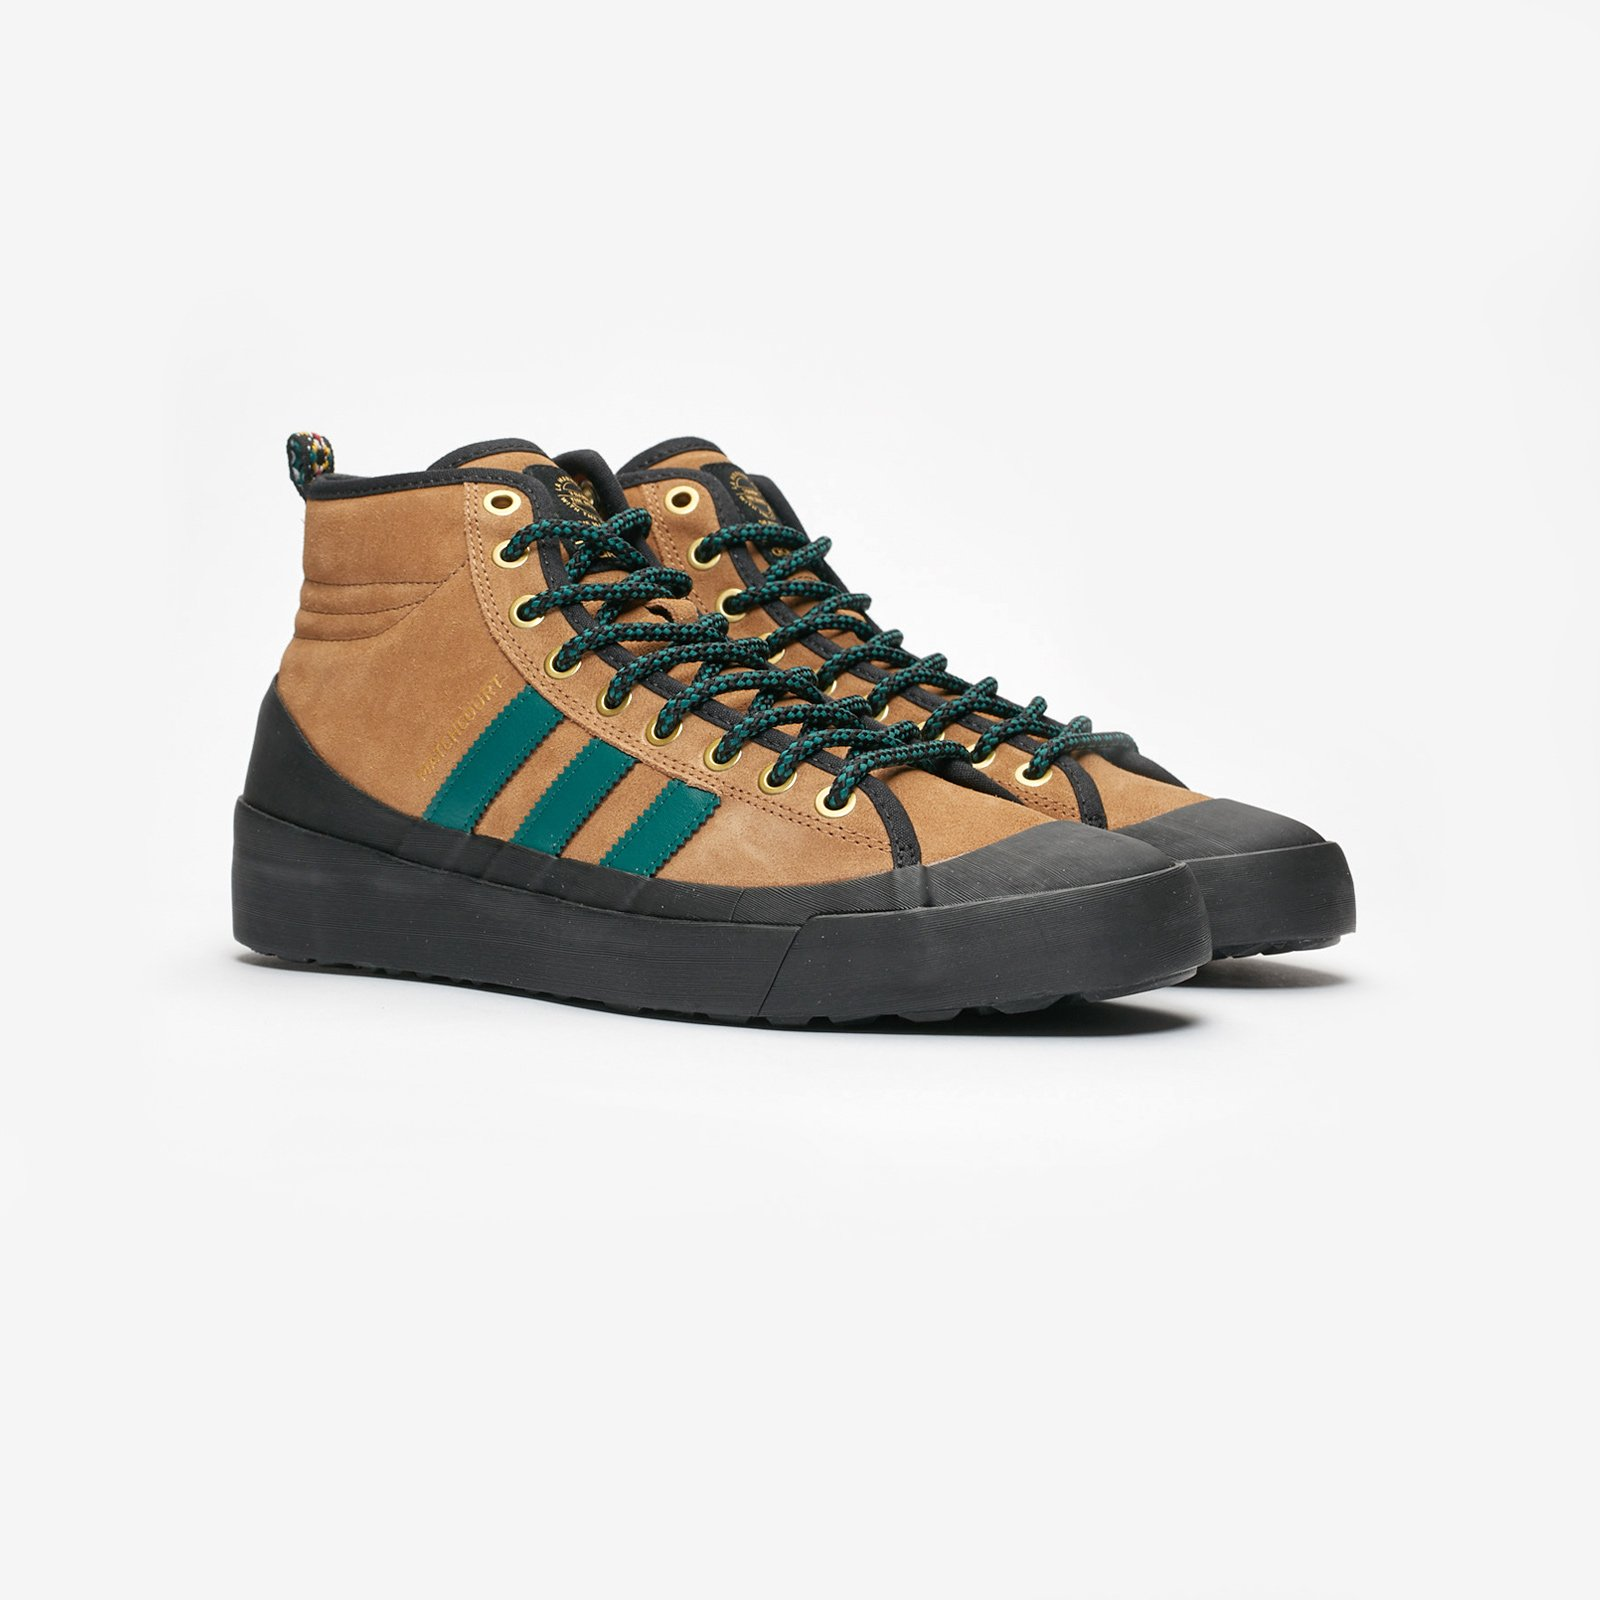 I High Rx3 B27962 Adidas Matchcourt Sneakers Sneakersnstuff nwm8vN0